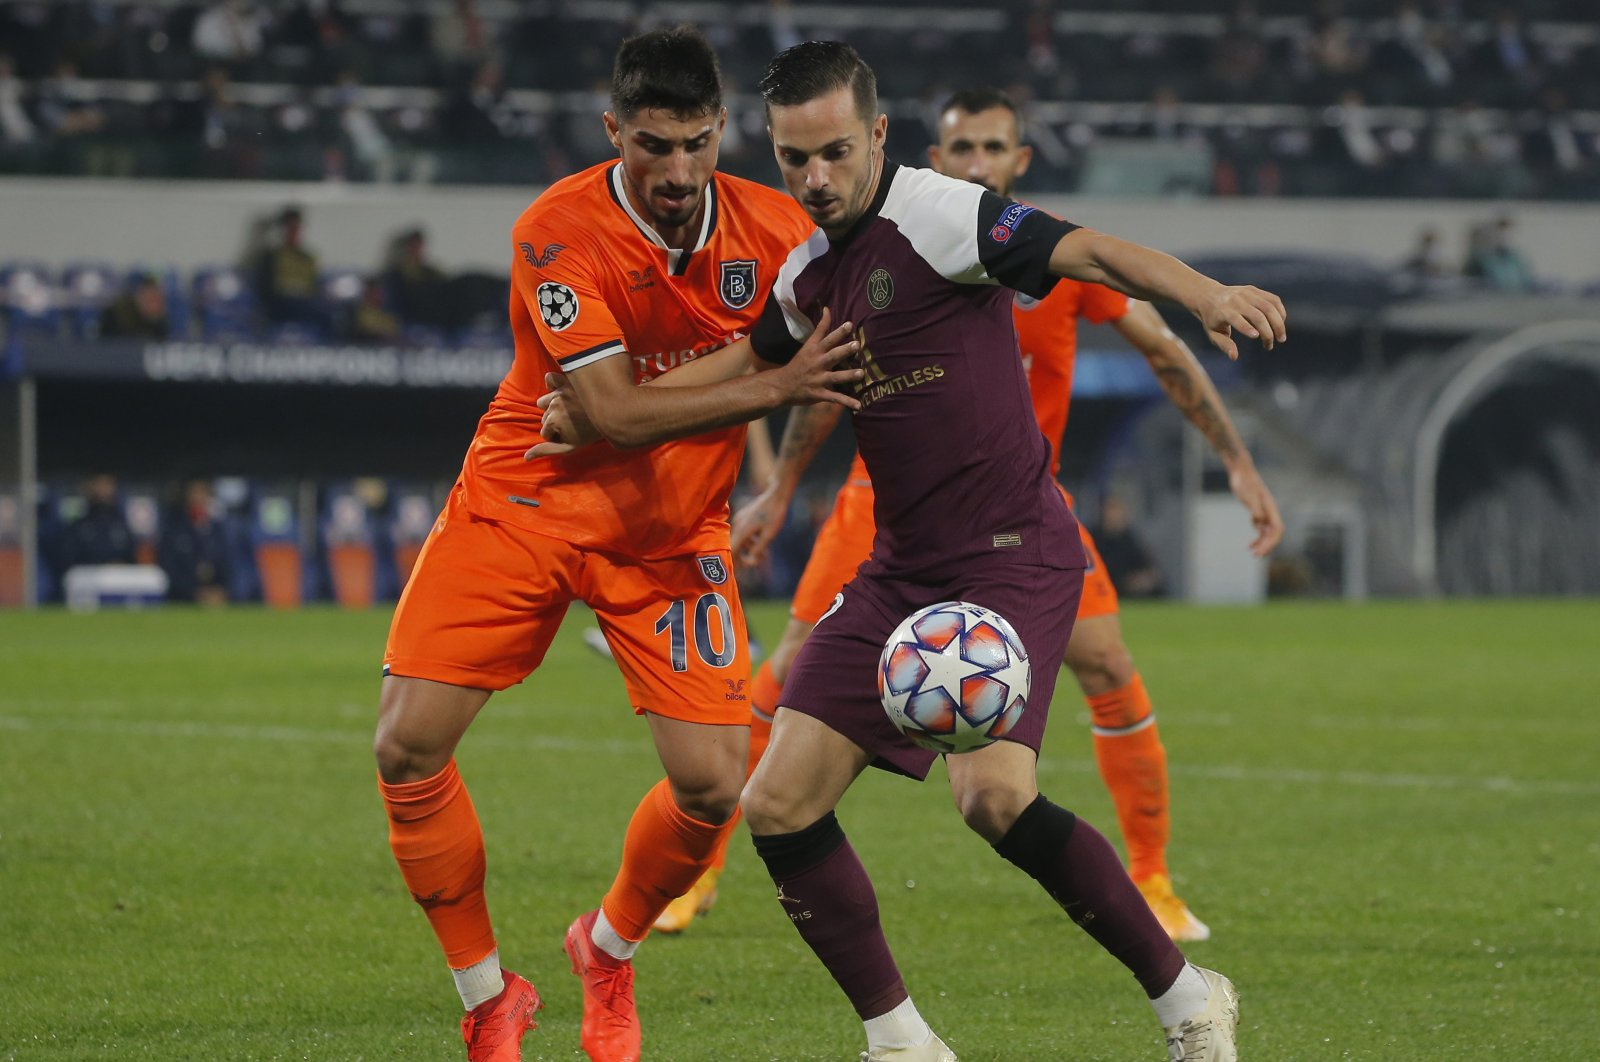 PSG's Pablo Sarabia (R) competes for the ball with Başakşehir's Berkay Özcan during a Champions League match at the Fatih Terim Stadium in Istanbul, Turkey, Oct. 28, 2020. (AP Photo)